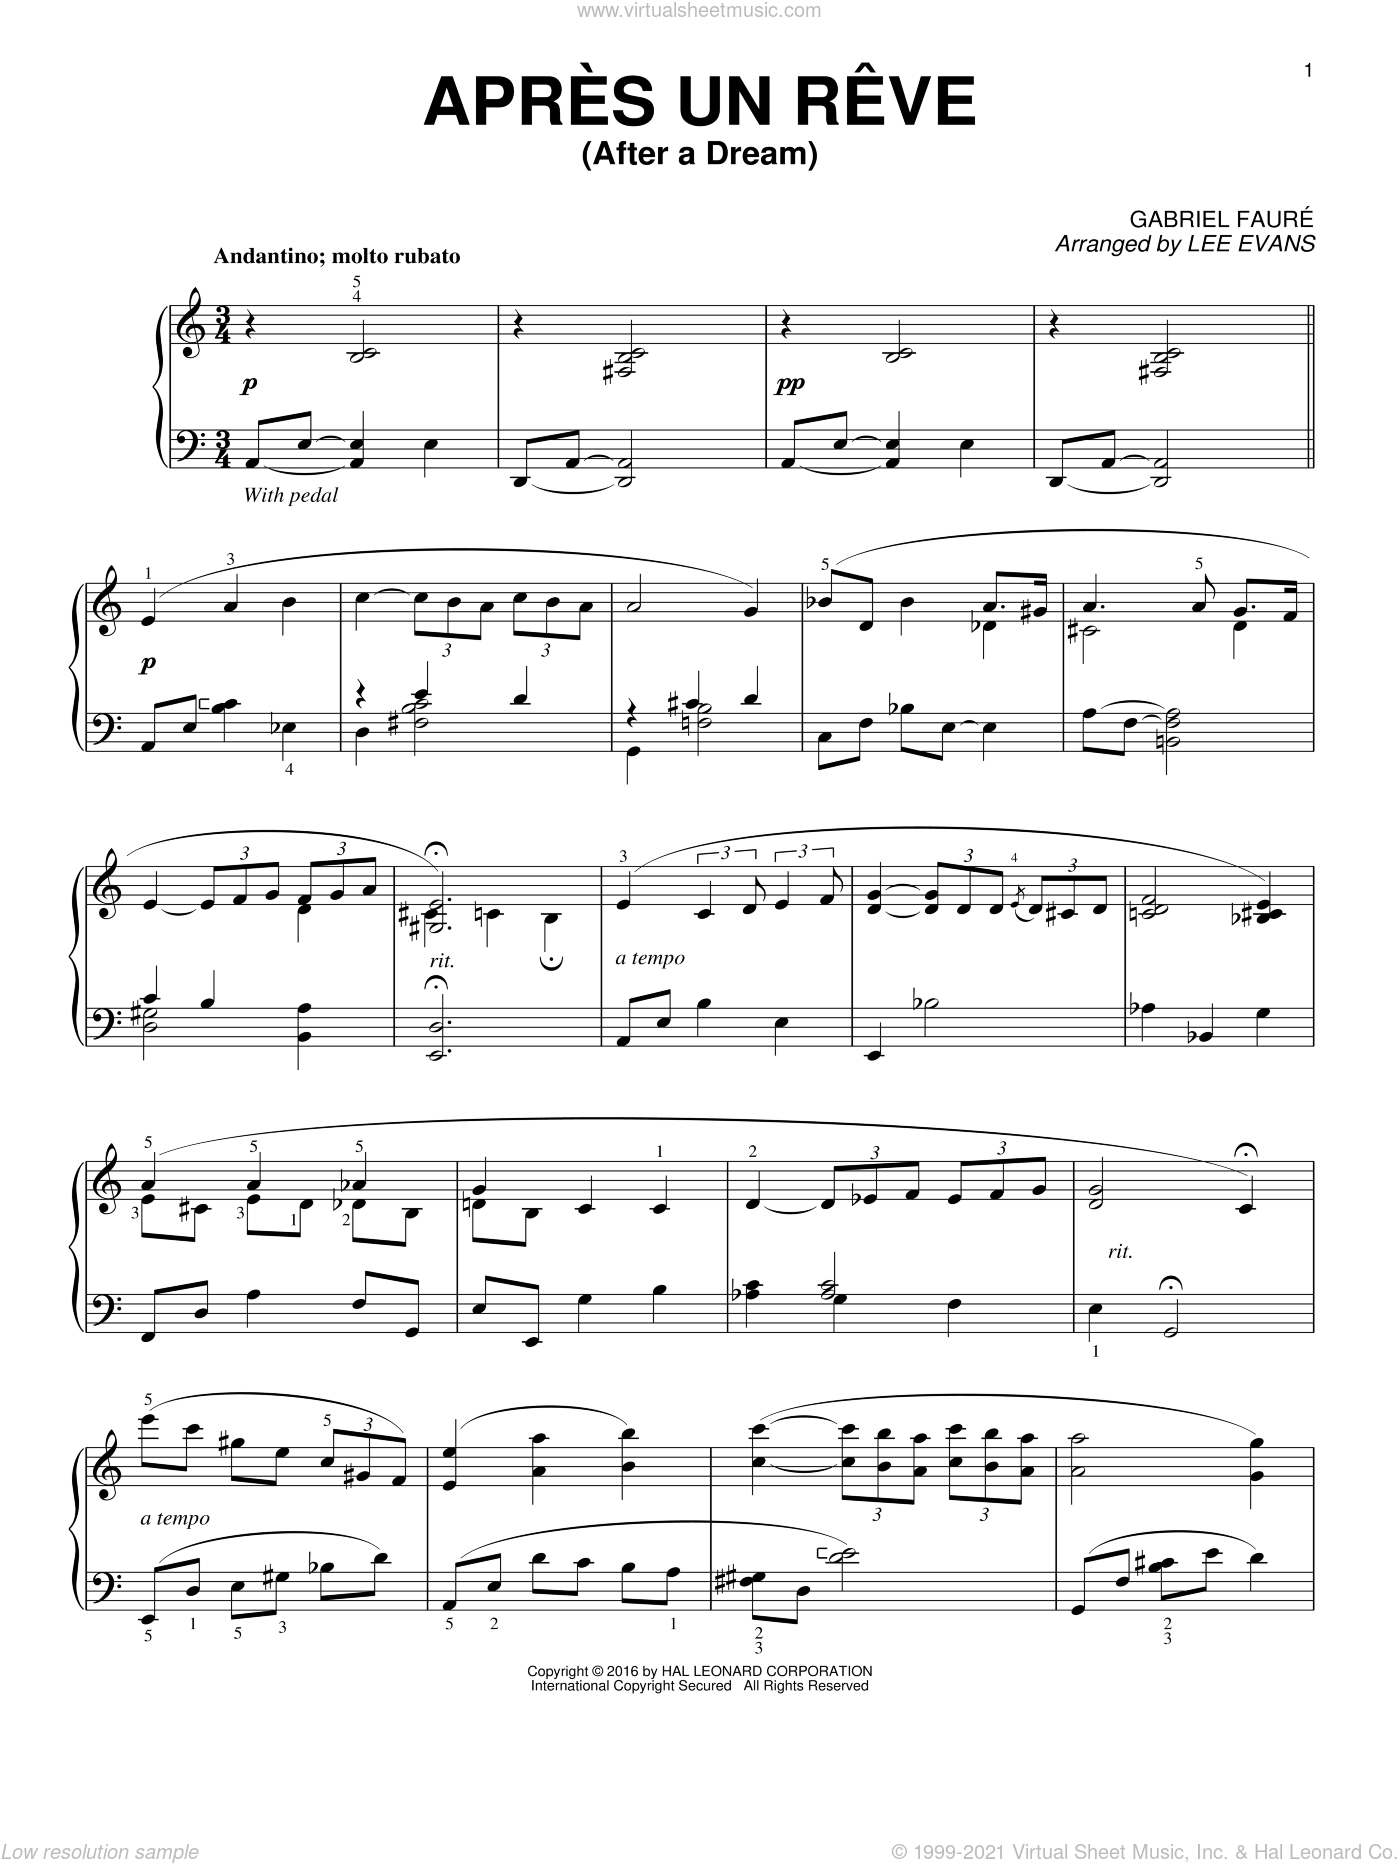 Apres un reve sheet music for piano solo by Gabriel Faure and Lee Evans, classical score, intermediate skill level